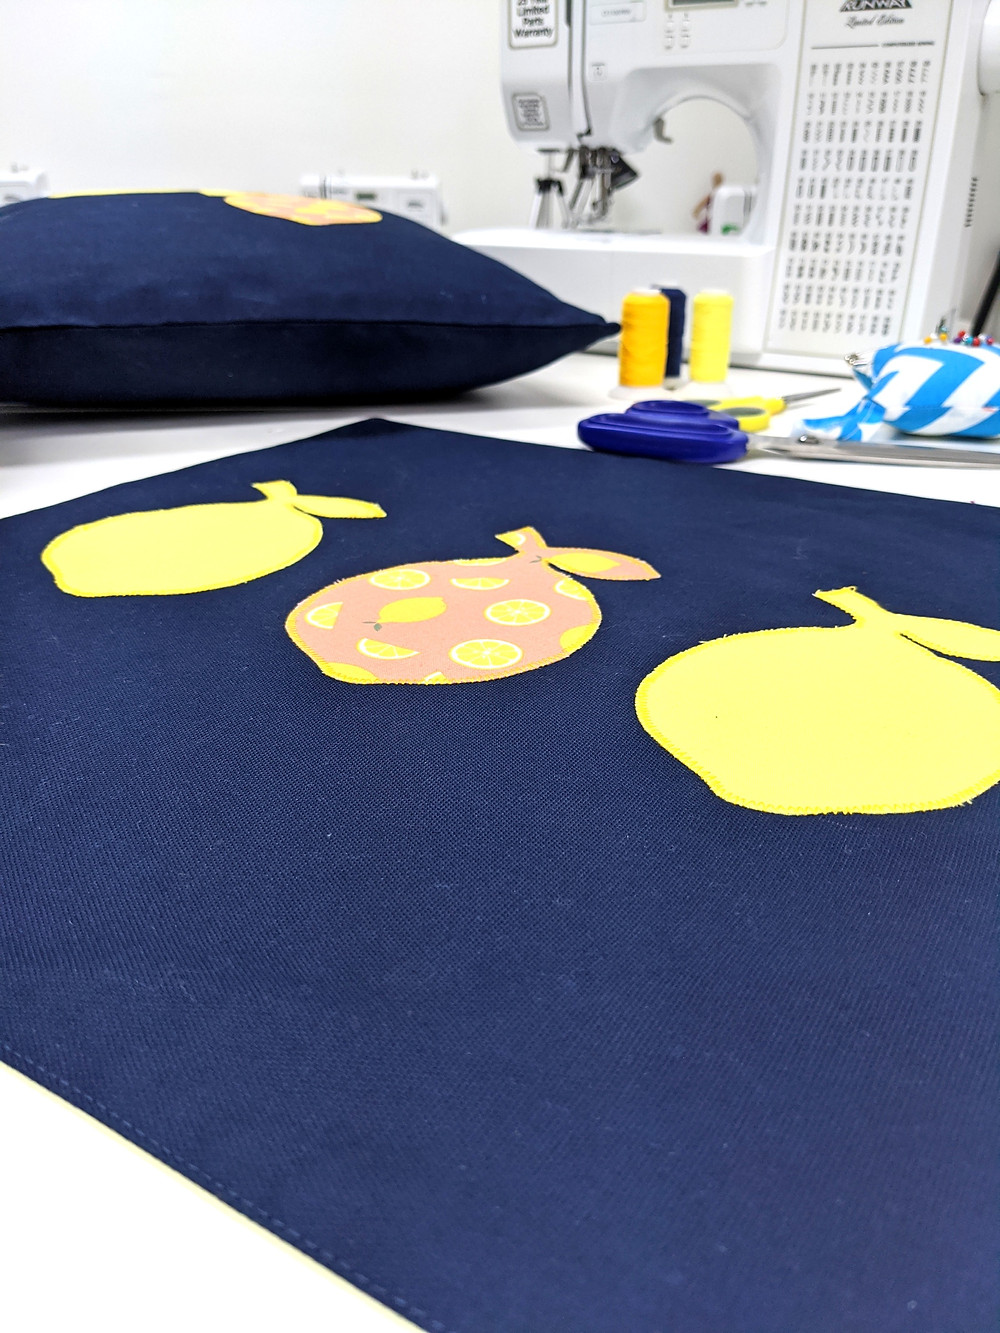 How to Sew a Place Mat